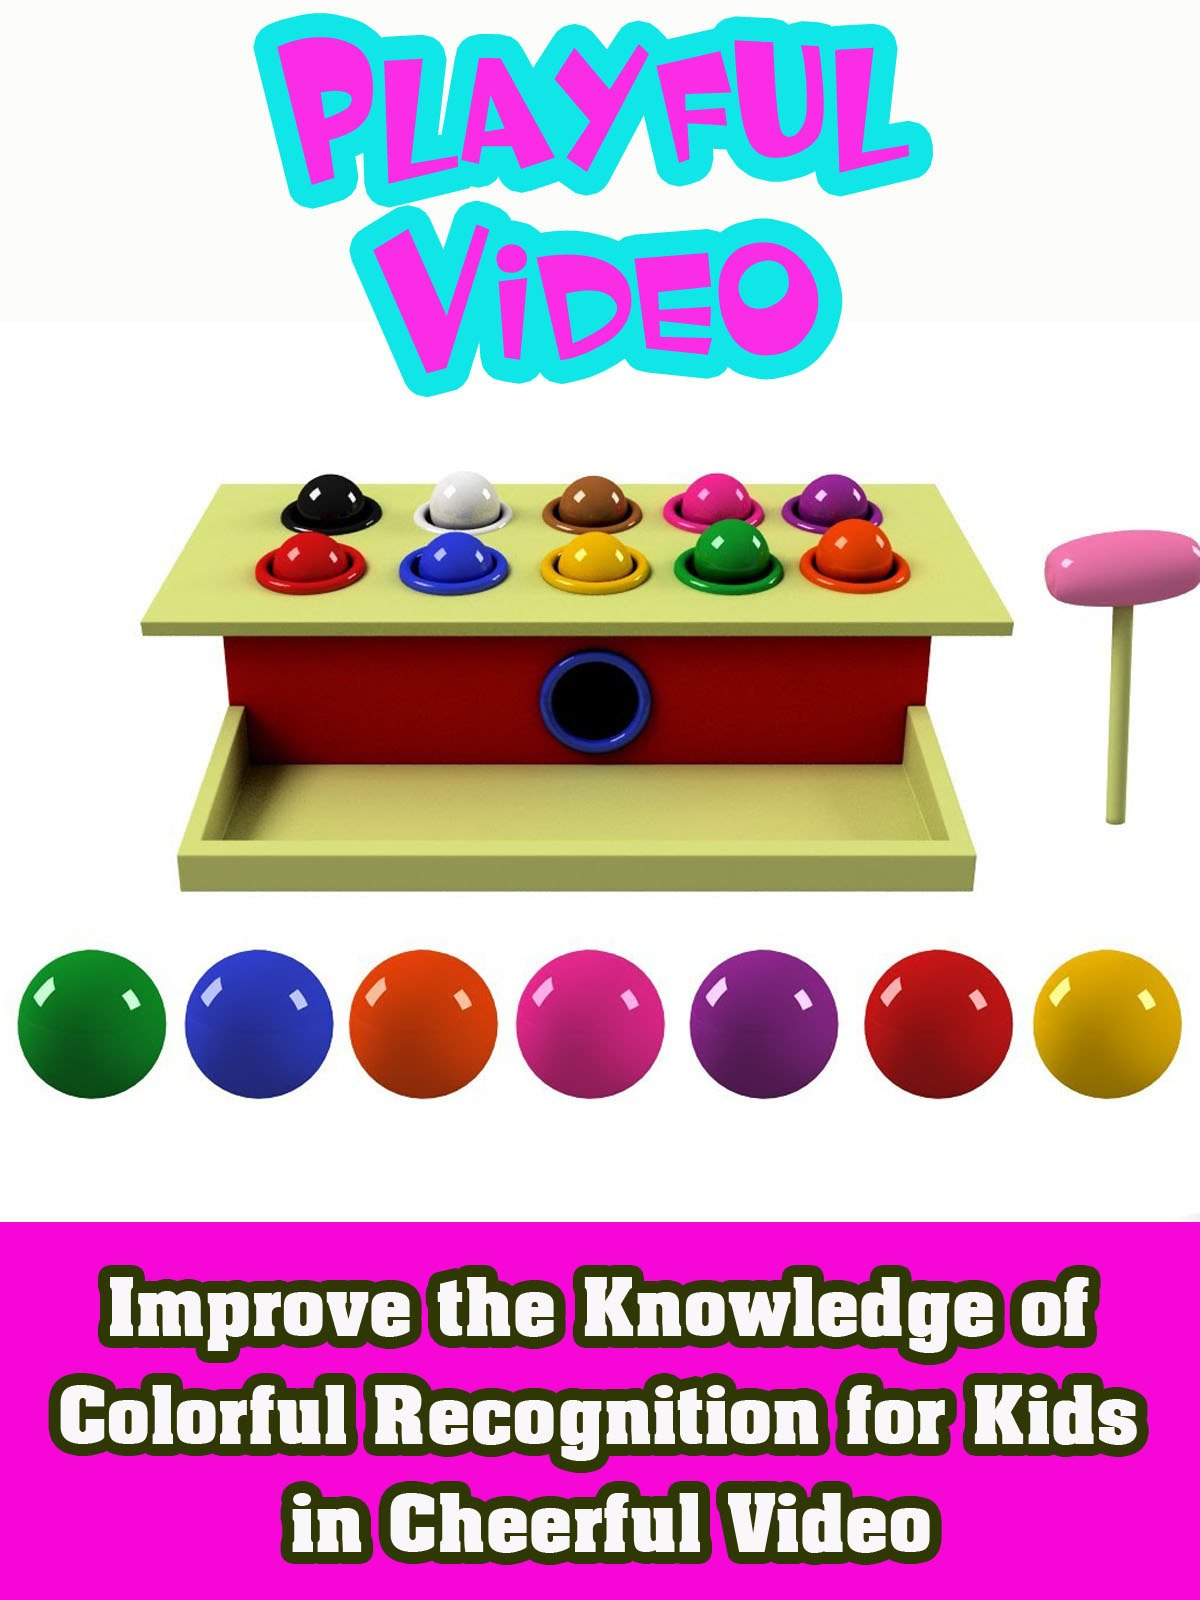 Improve the Knowledge of Colorful Recognition for Kids in Cheerful Video